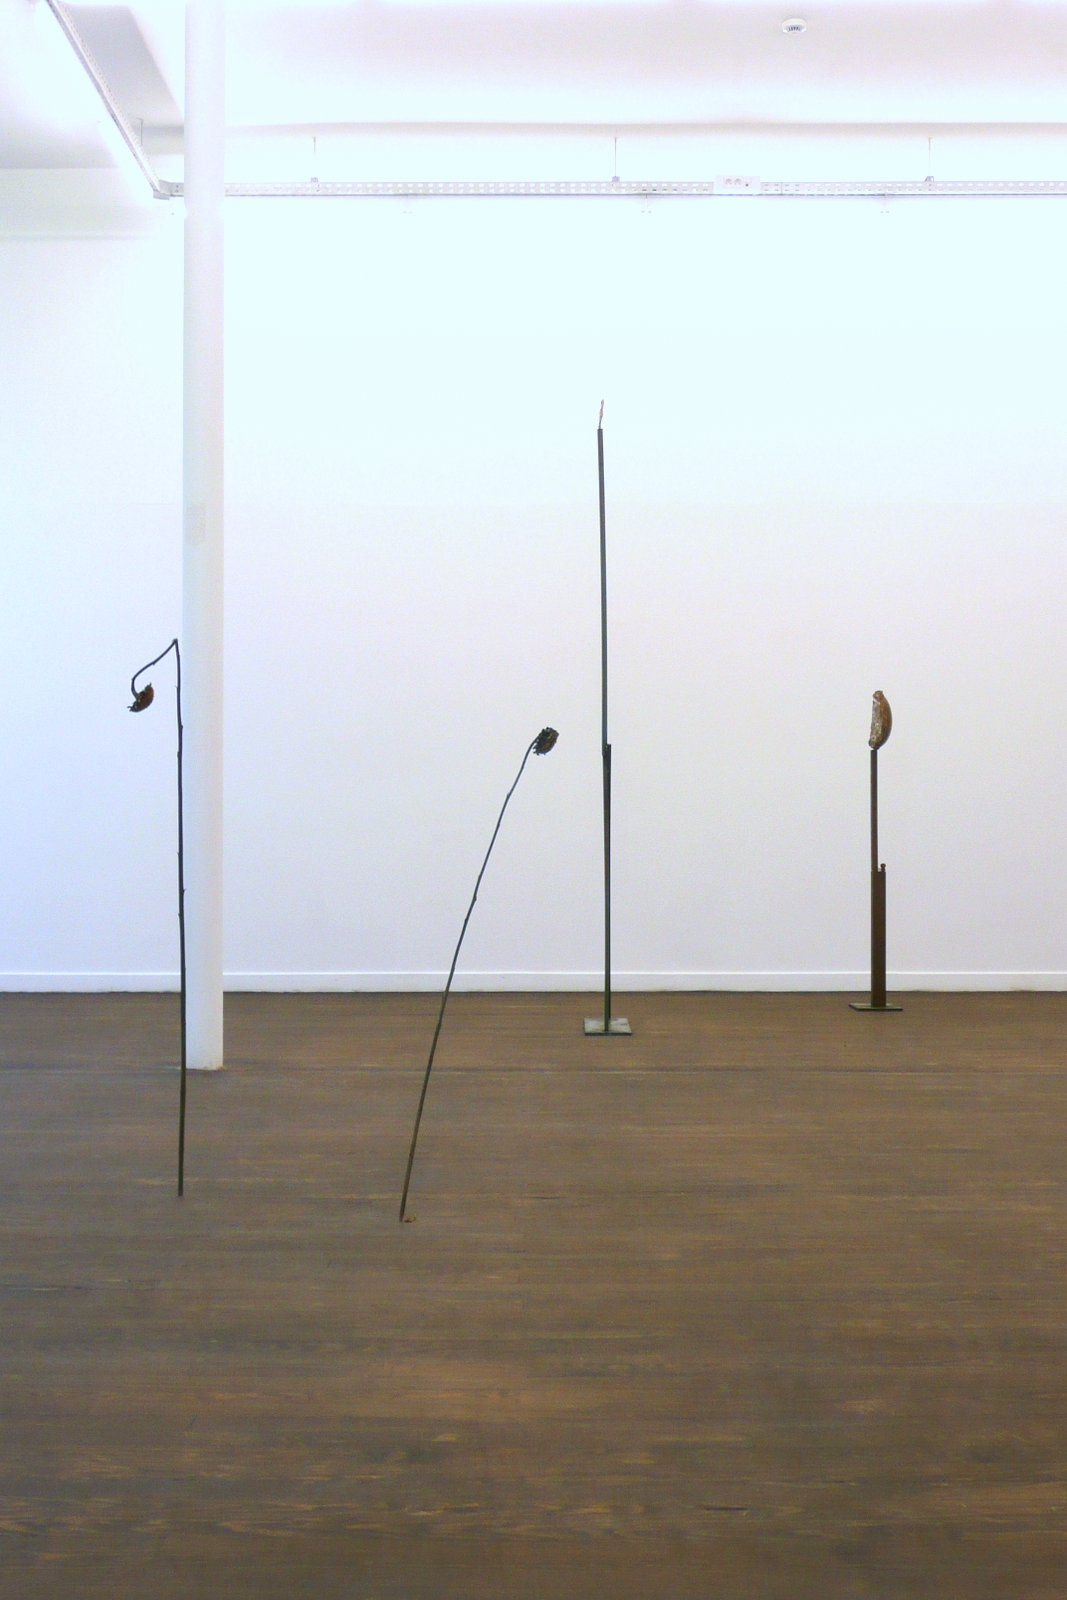 Luca Francesconi, Echo of the Moon solo show, installation view, Crac-Alsace, 2012 4